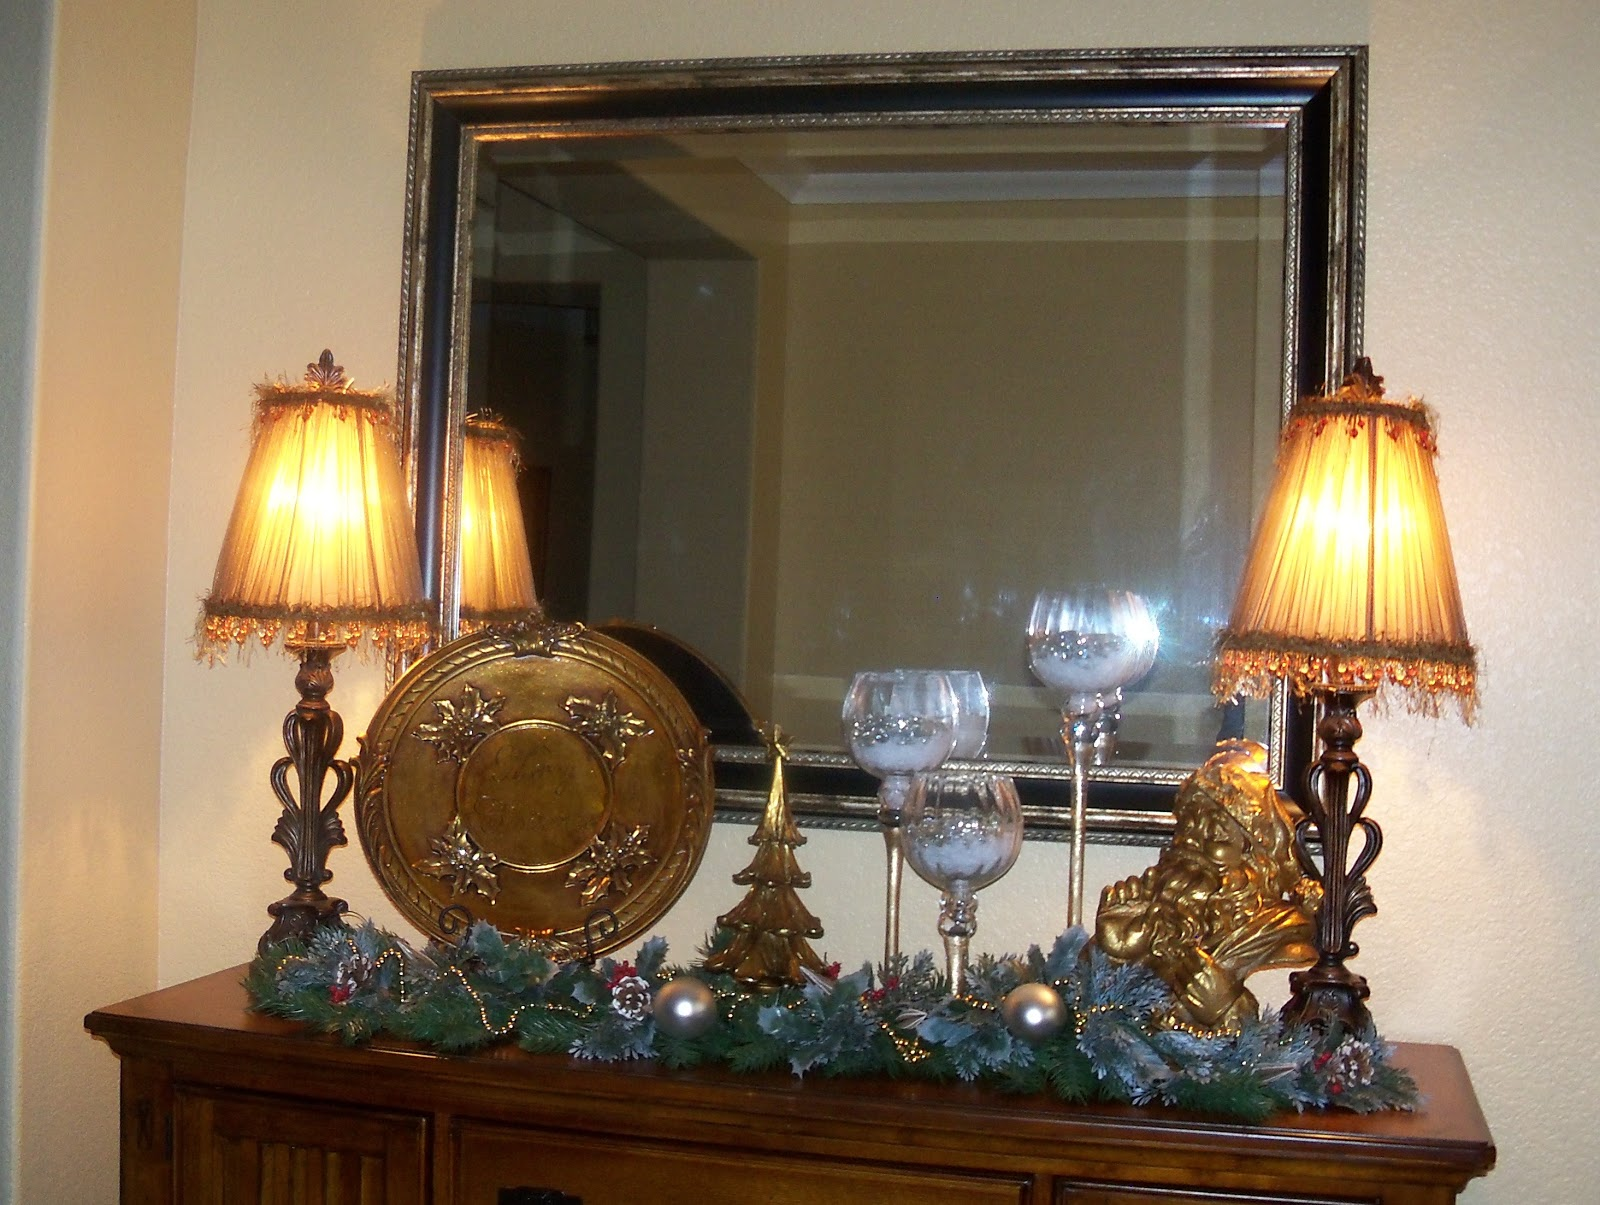 Southern seazons dining room buffet decorated for christmas for Decorate my dining room